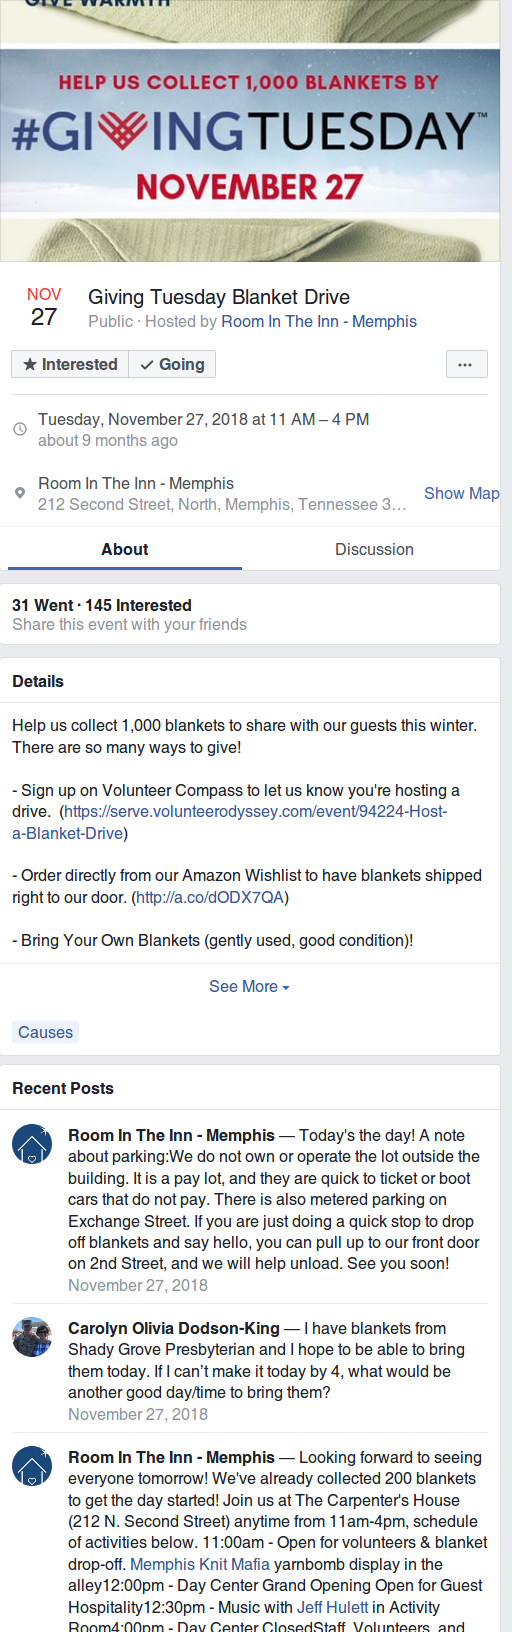 Alternate Facebook Fundraising for Giving Tuesday